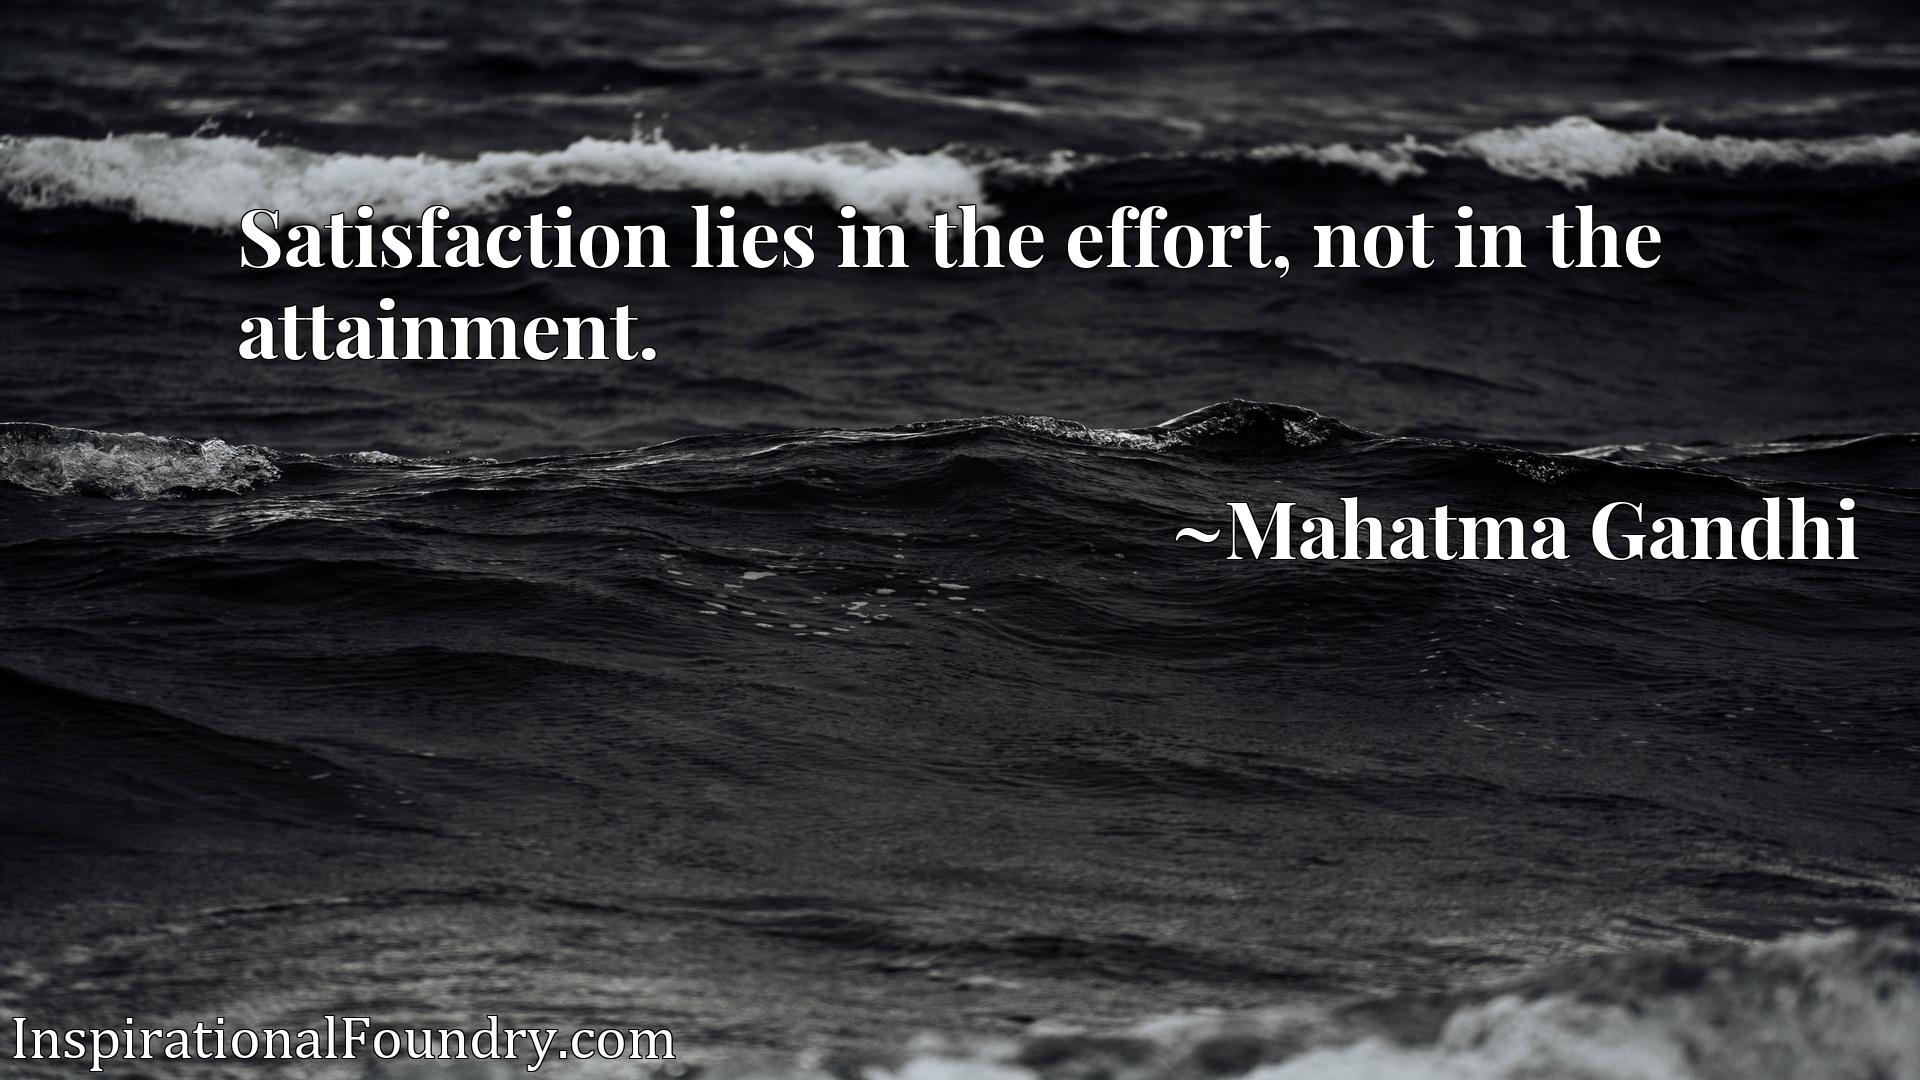 Satisfaction lies in the effort, not in the attainment.